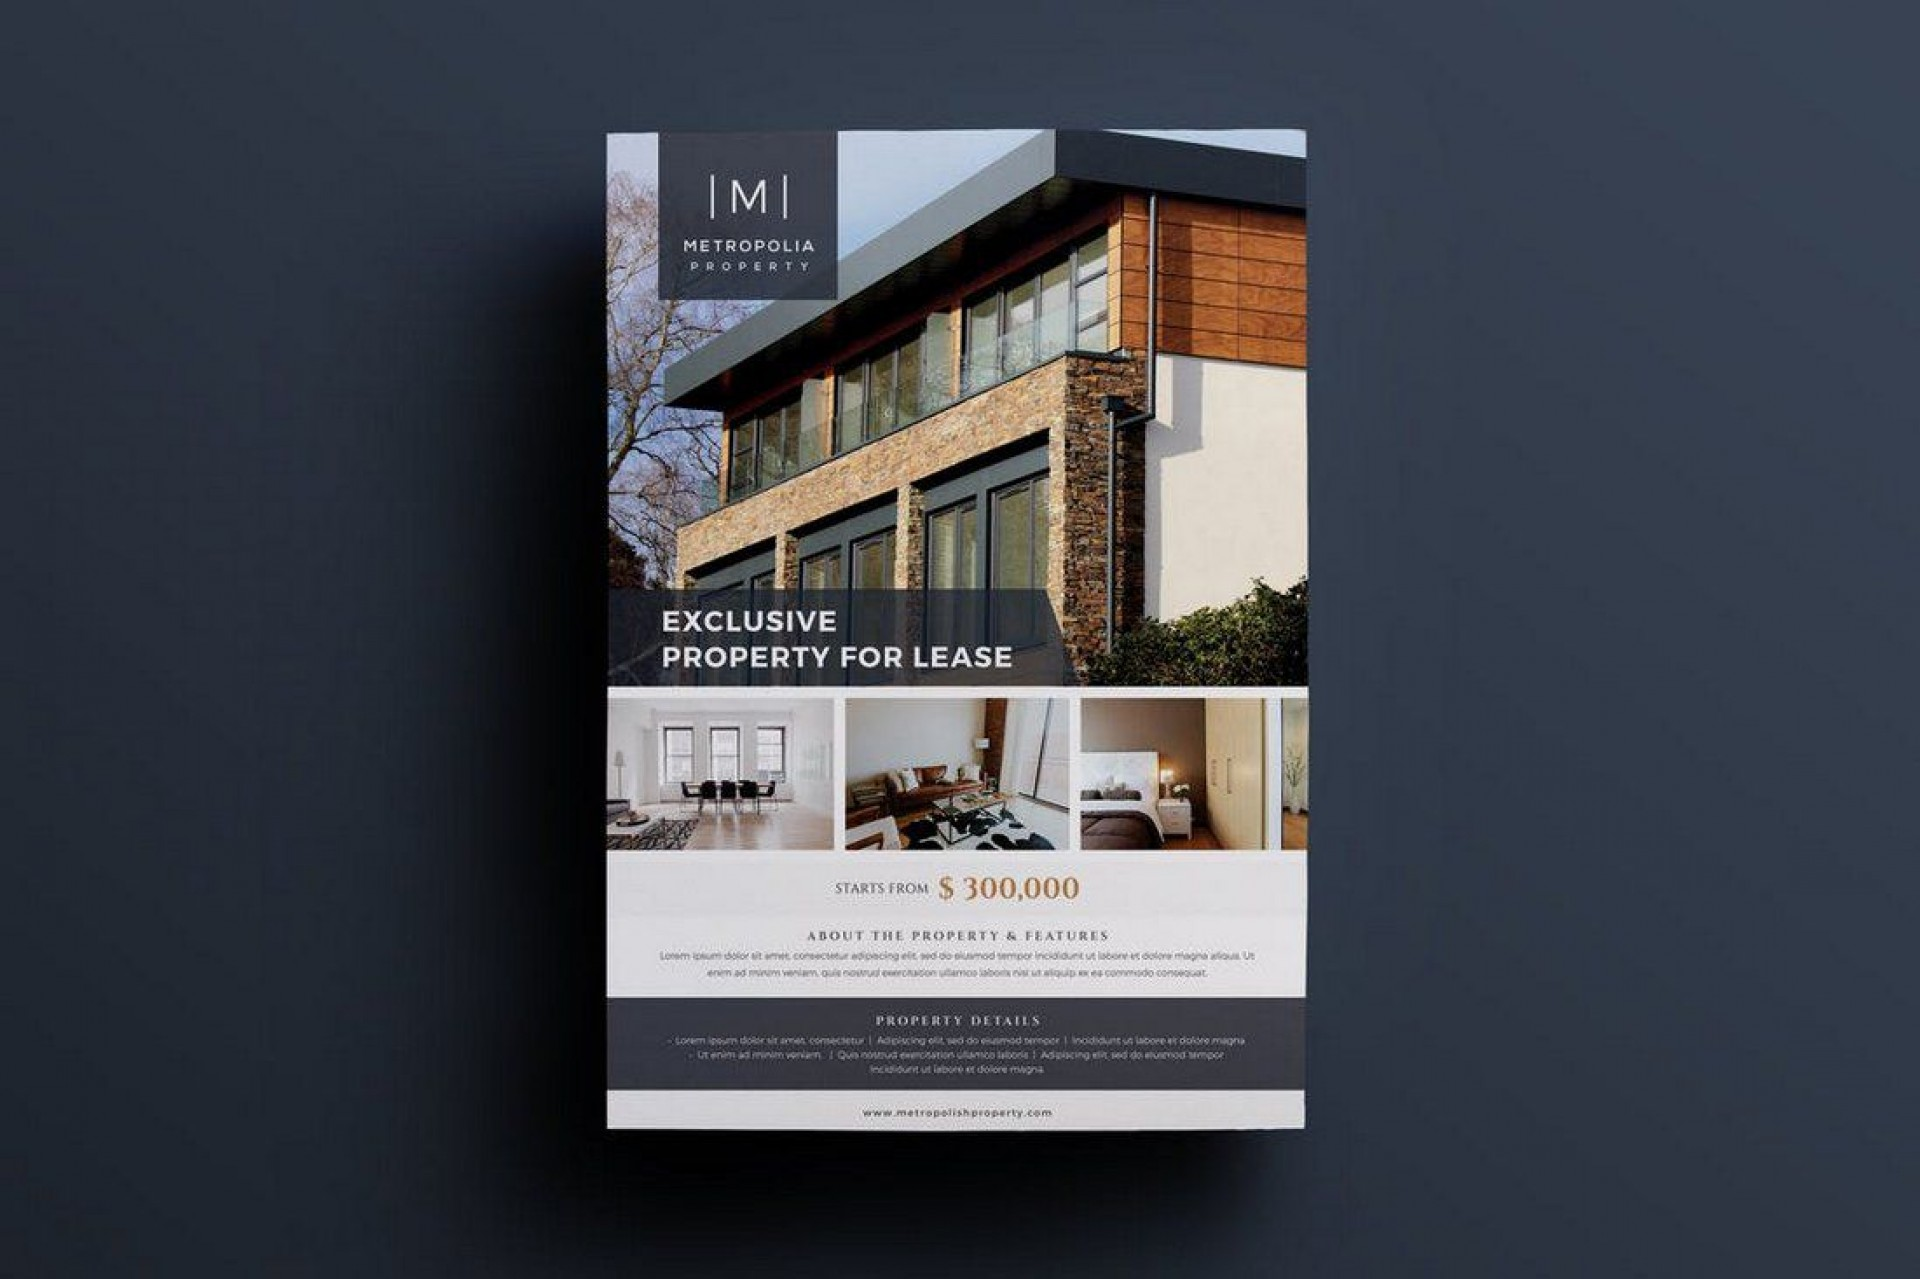 005 Unique Open House Flyer Template Photo  Templates Word Free Microsoft Real Estate1920